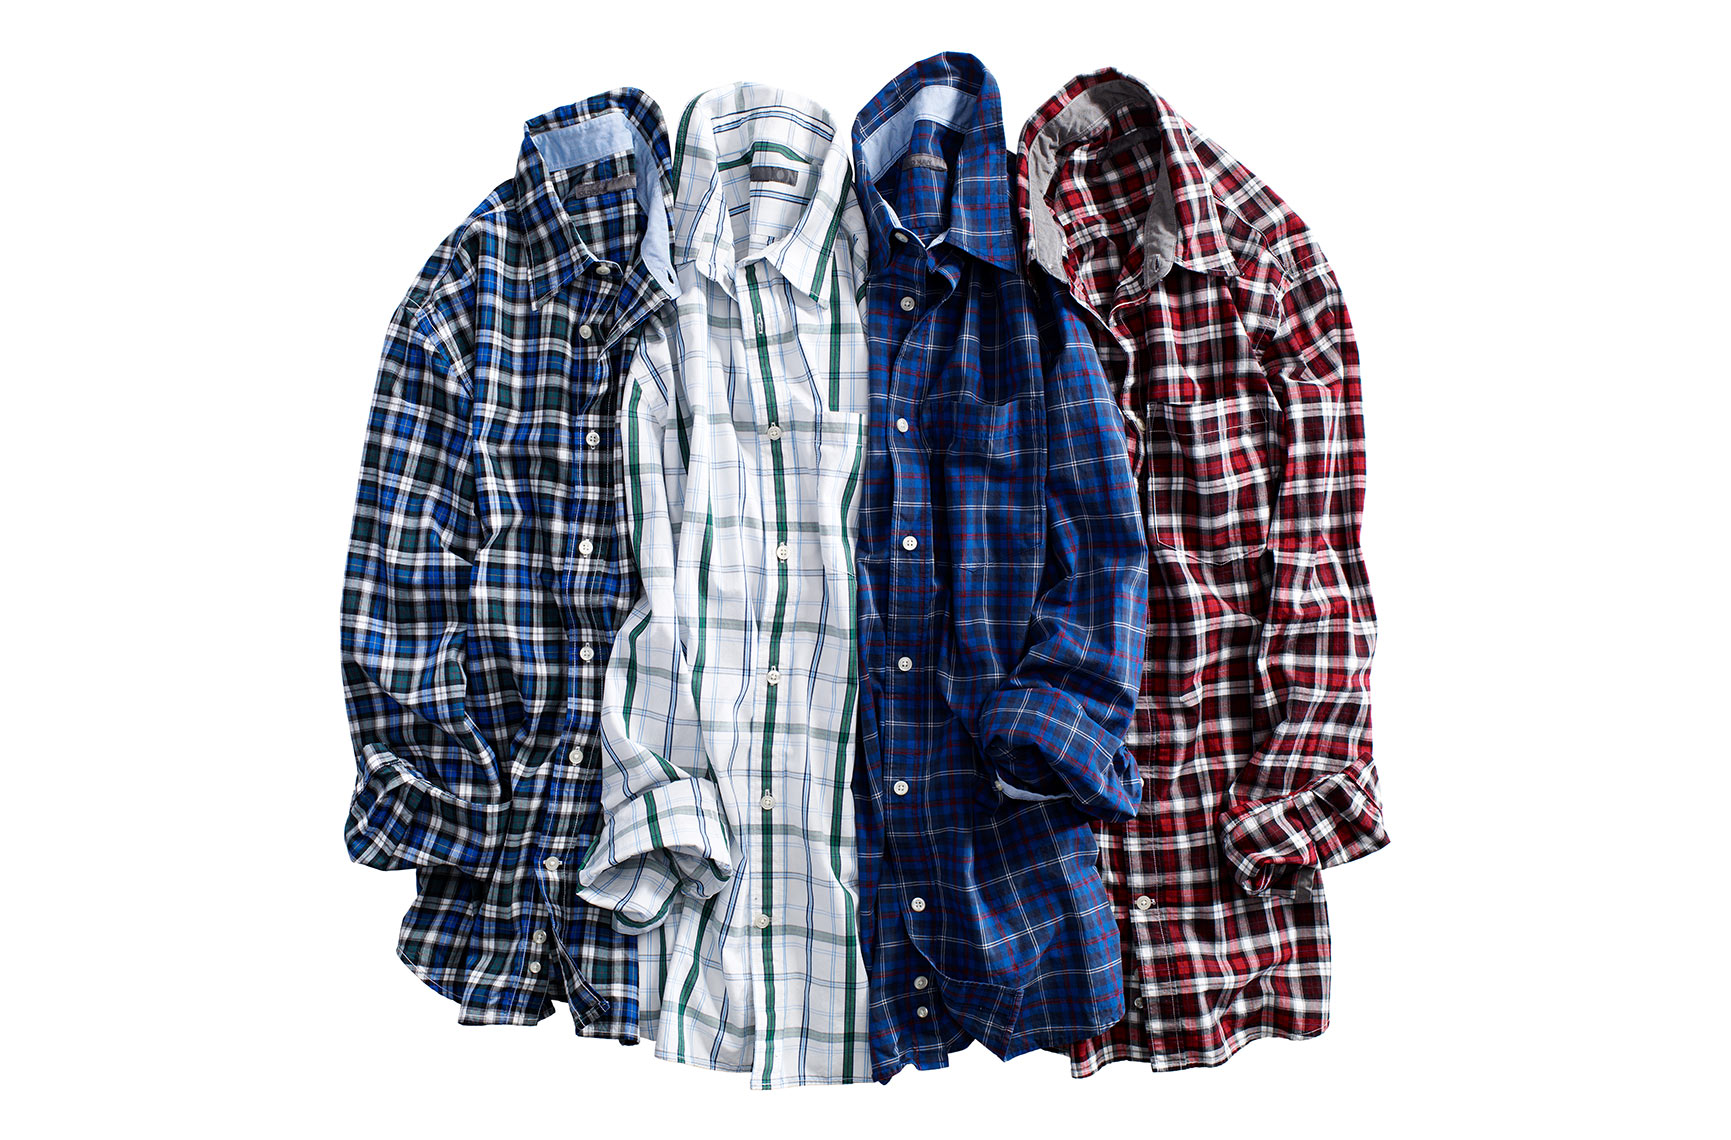 Apparel Still Life, Mens Casual Plaid Shirts